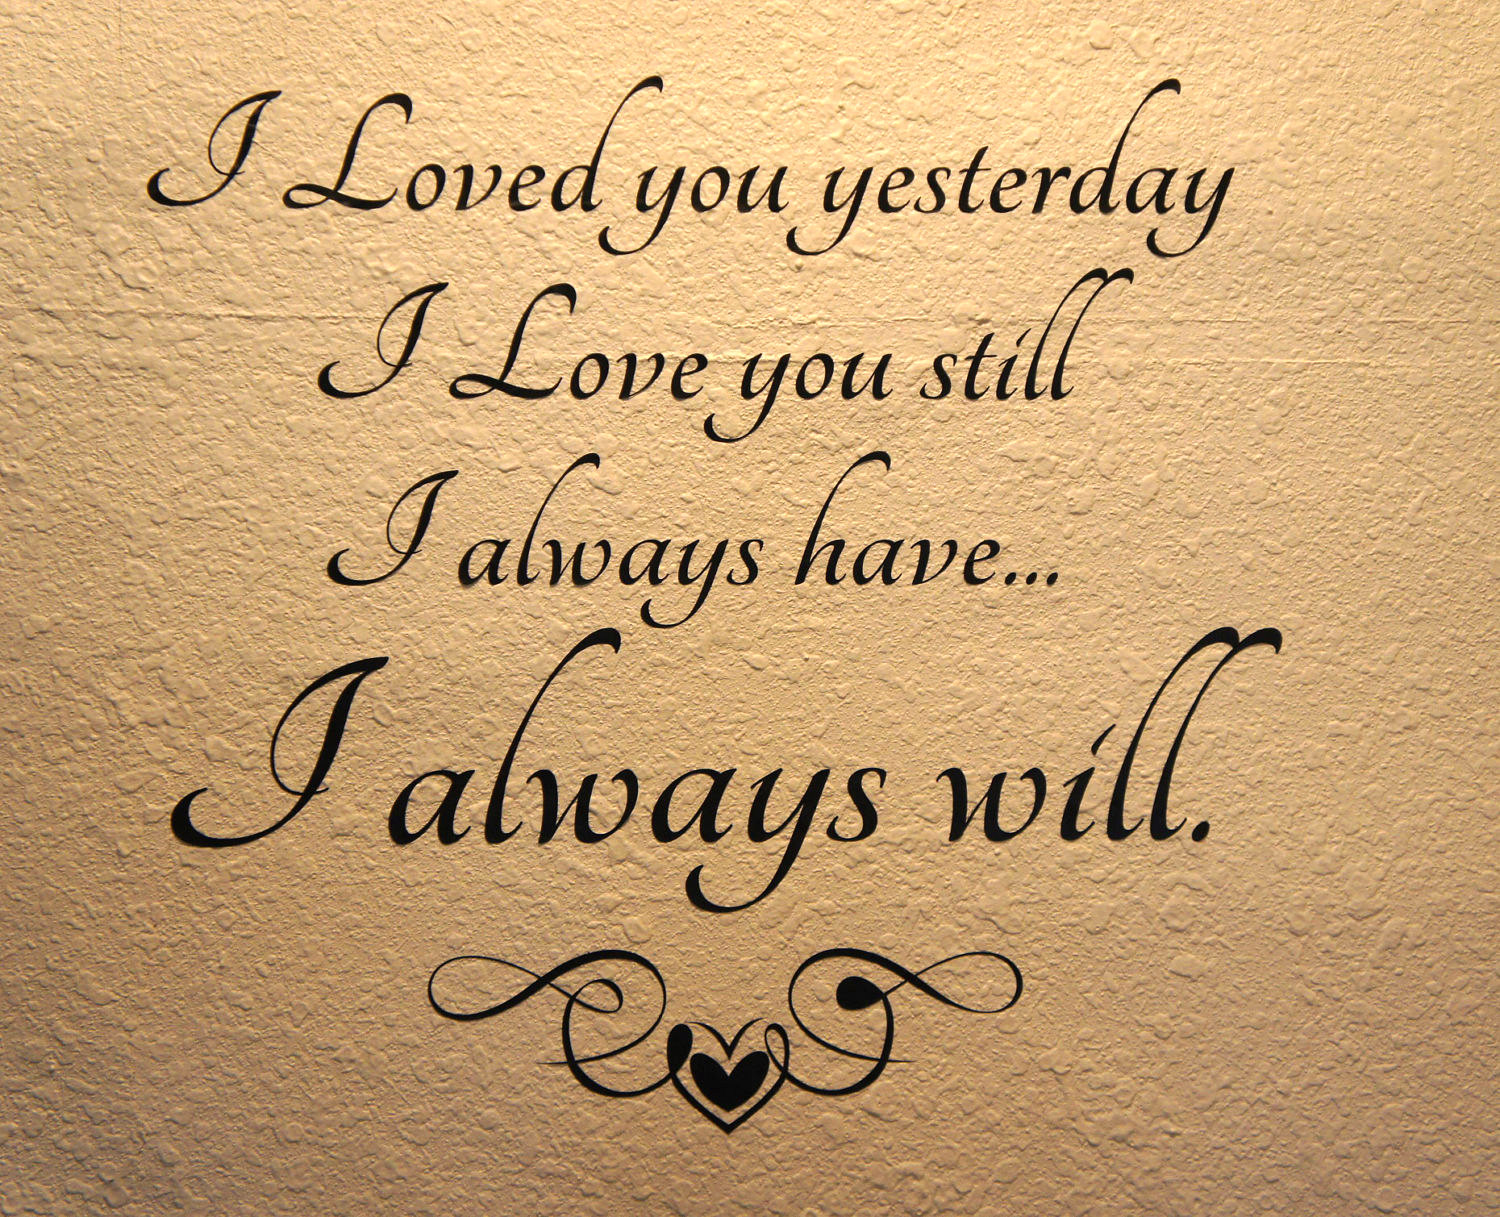 I Will Always Love You Quotes For Him Tumblr : love-you-quotes-for-him-from-the-heart-tumblr-4